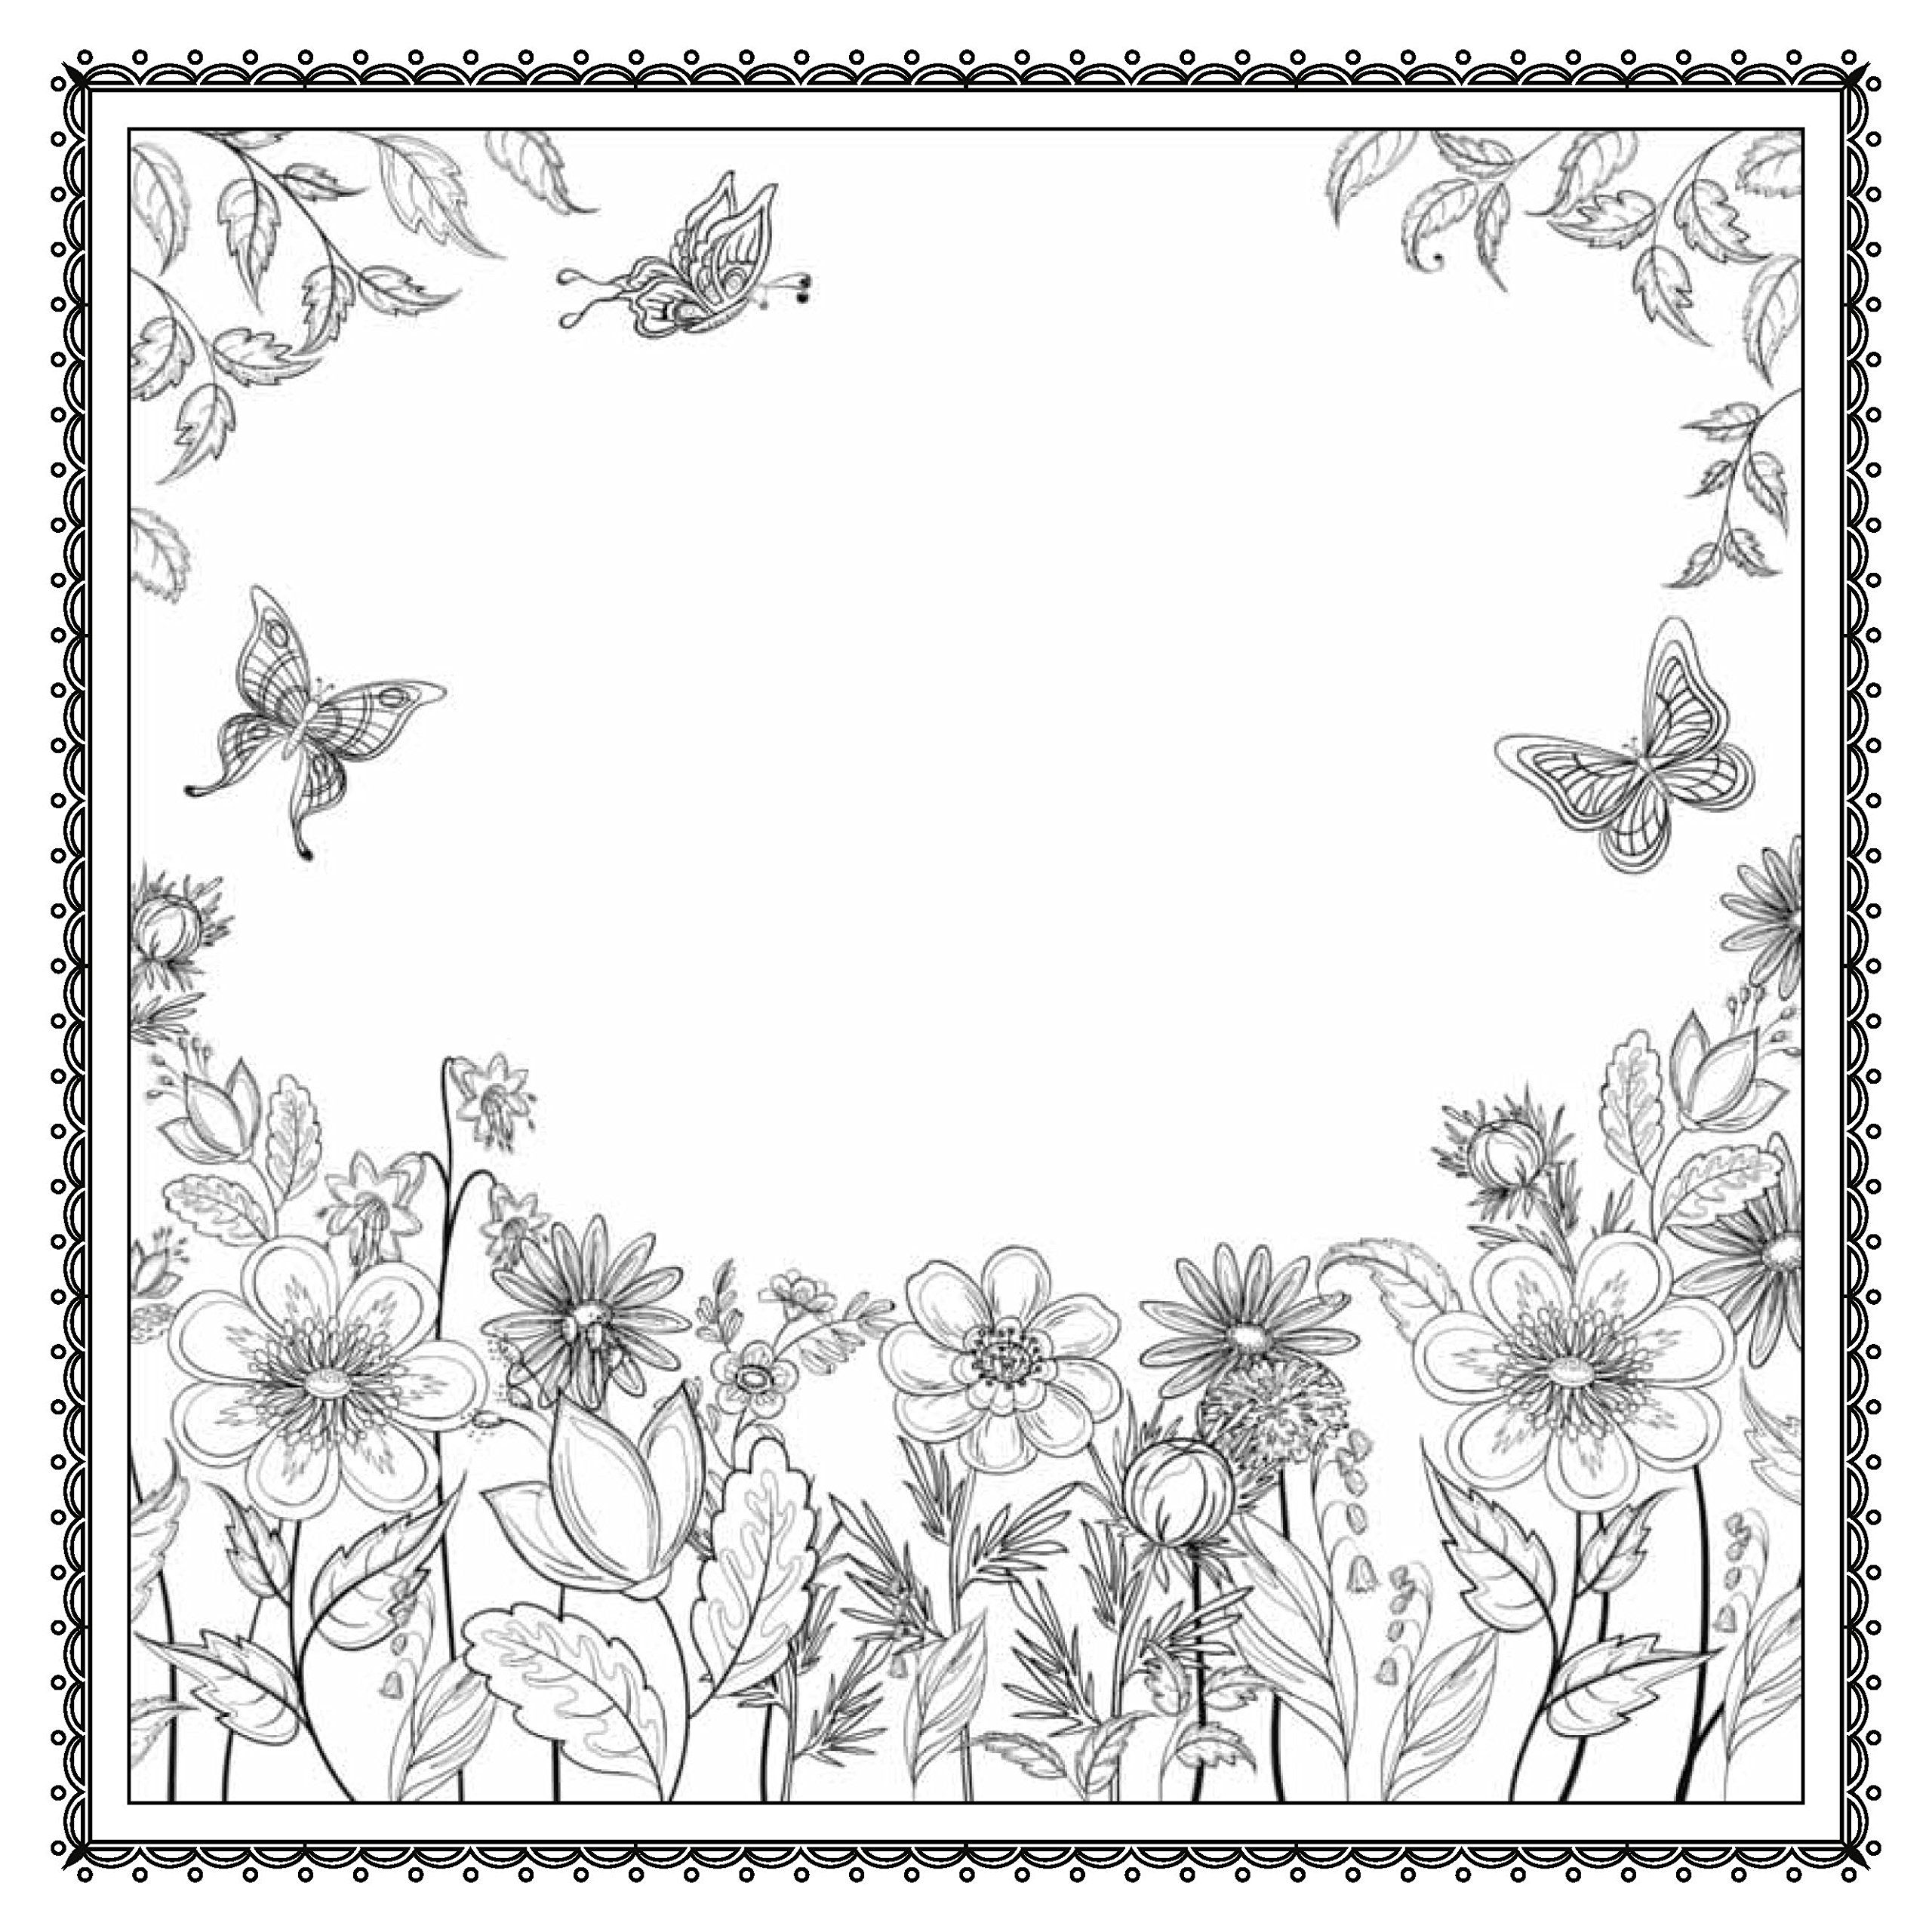 free printable secret garden coloring pages | Magic Garden: Fantastic Flowers Coloring Book for Adults ...